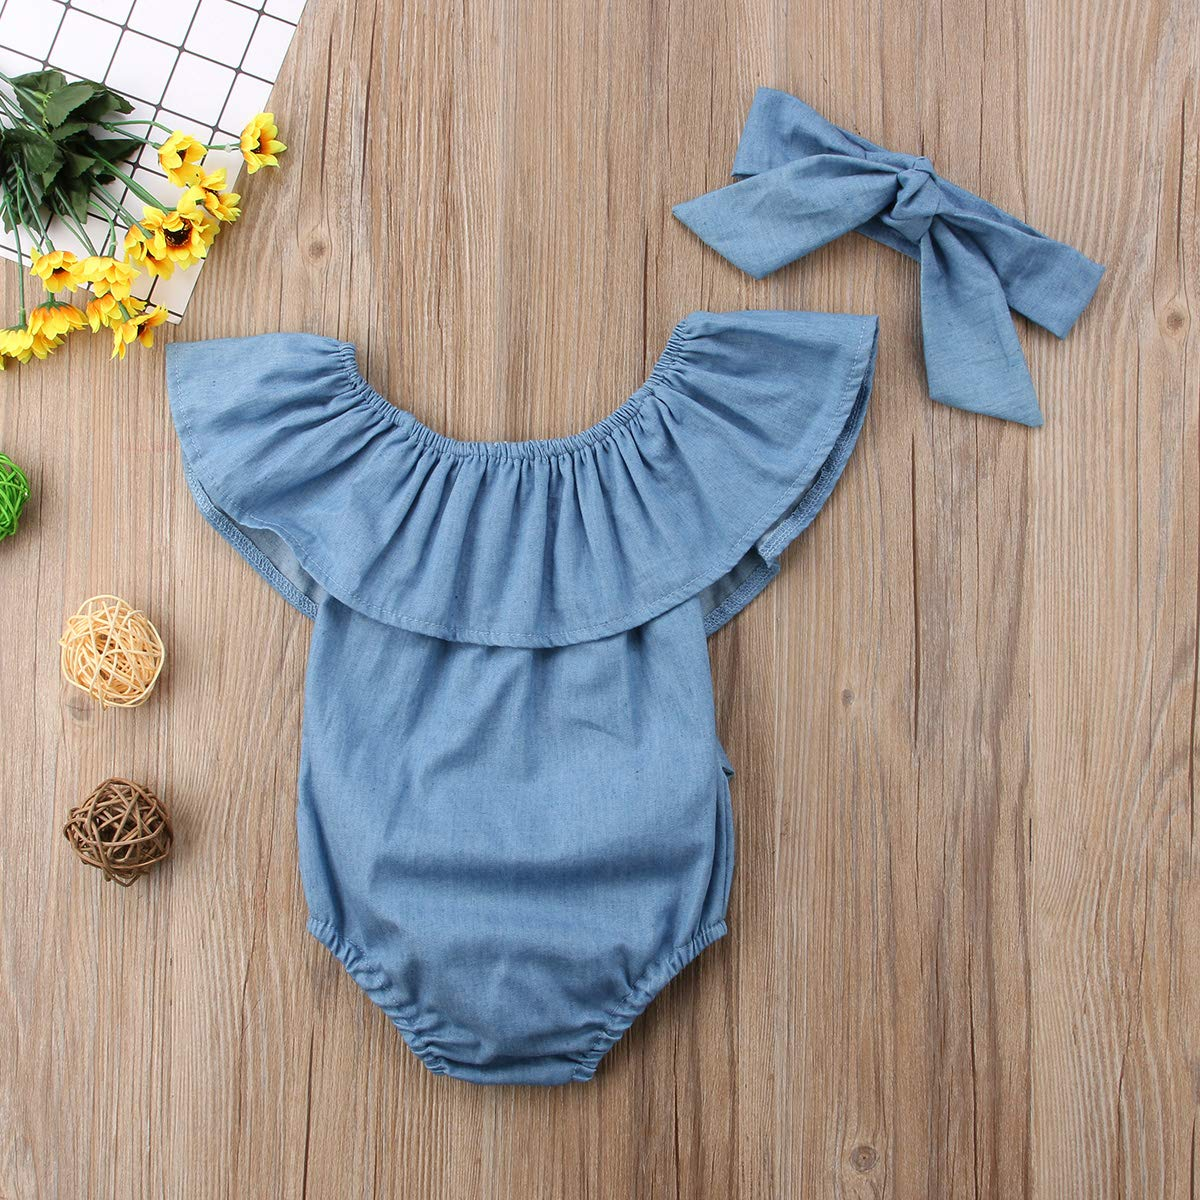 Newborn Kids Baby Girls Front Bowknot Bodysuit Romper Jumpsuit Outfits Set 0-24M